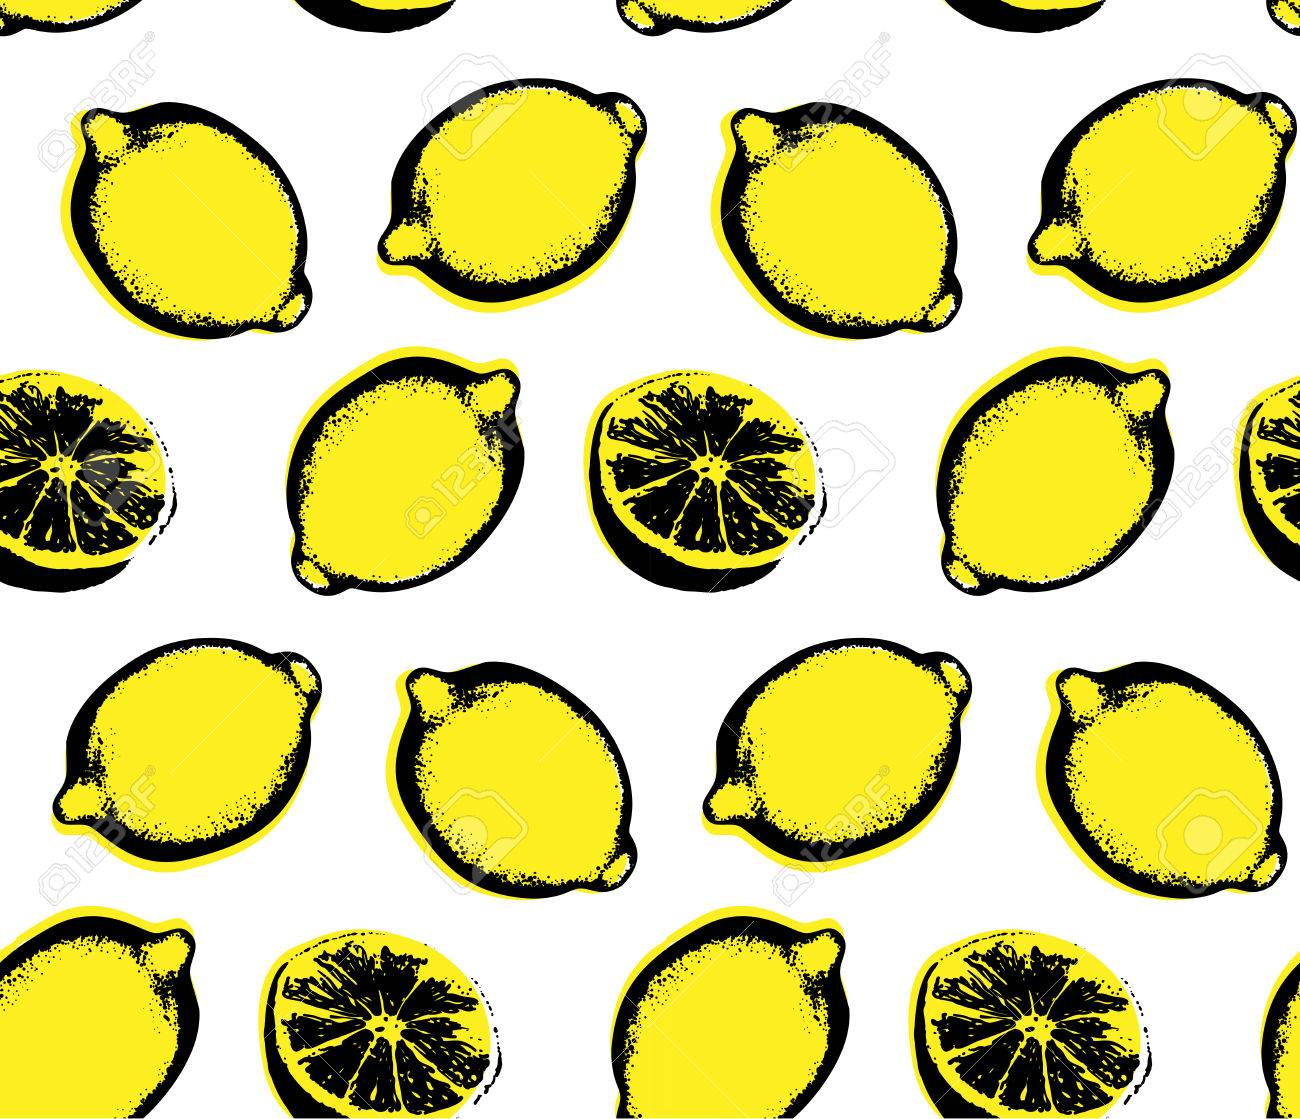 Vector Hand Drawn Lemon Seamless Pattern. Sketch. Pop Art. Perfect ...